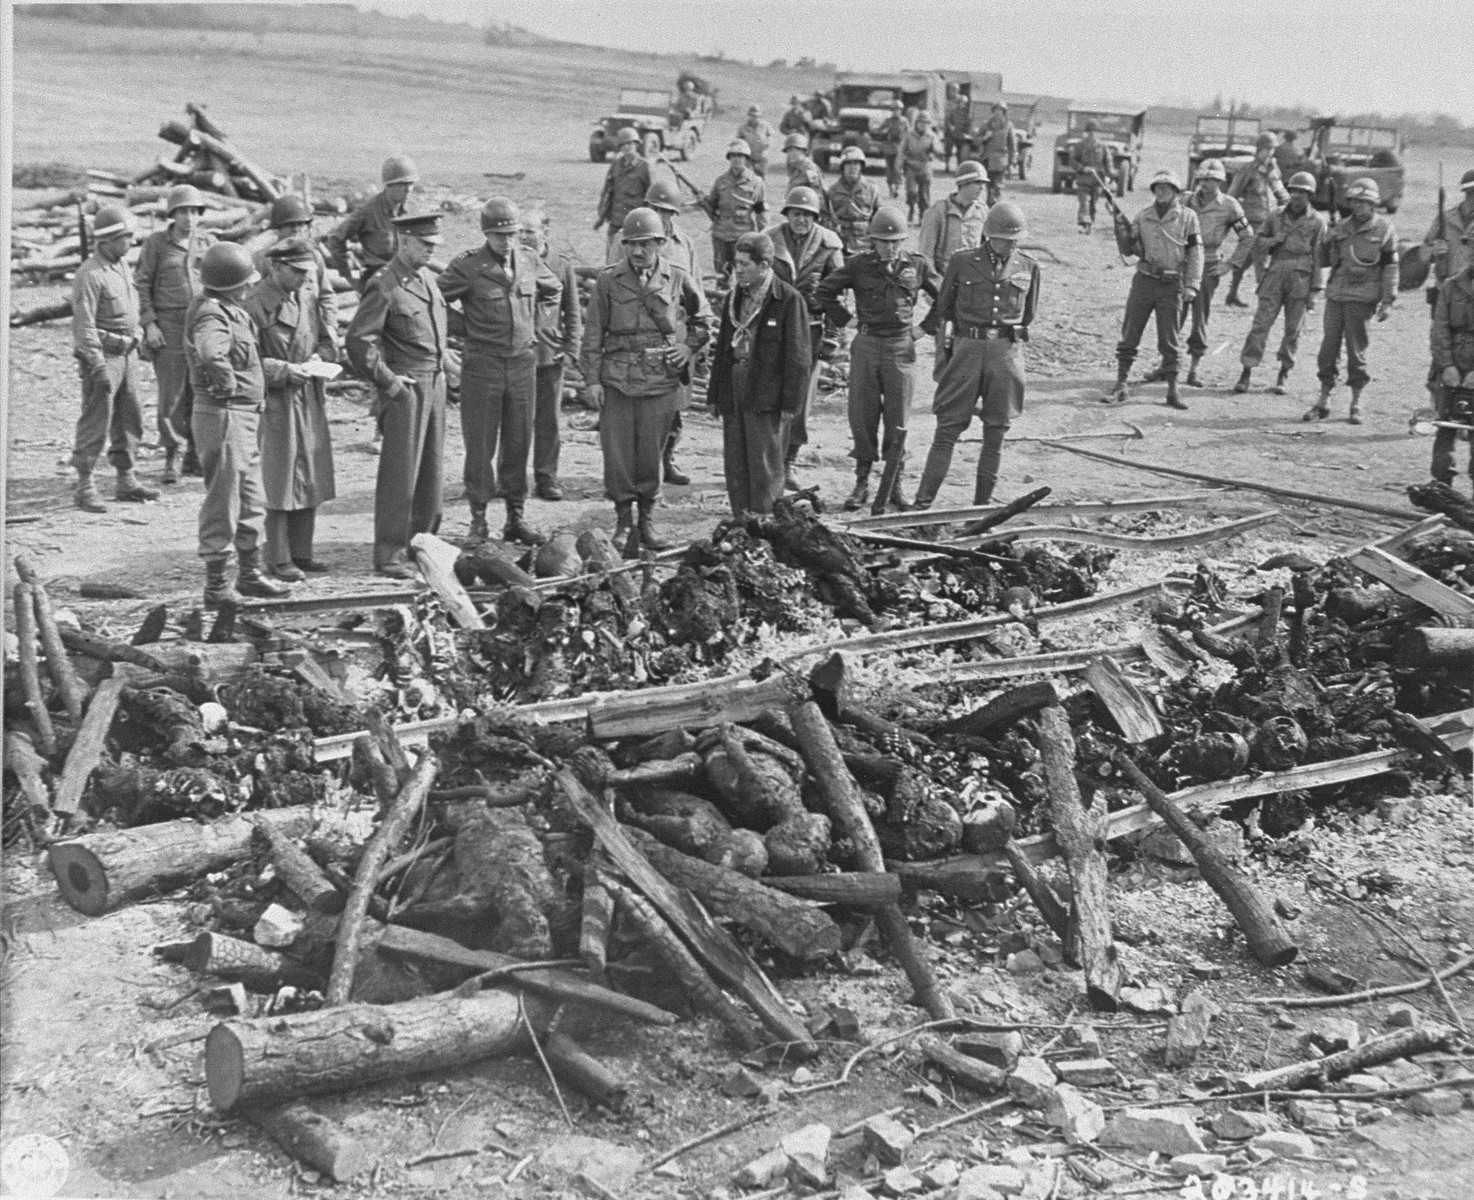 """While on an inspection tour of the newly liberated Ohrdruf concentration camp, General Dwight Eisenhower and a party of high ranking U.S. Army officers, including Generals Bradley, Patton, and Eddy, view the charred remains of prisoners that were burned upon a section of railroad track during the evacuation of the camp.  Also pictured is Jules Grad (second from the left taking notes), correspondent for the """"Stars and Stripes"""" U.S. Army newspaper and Alois J. Liethen of Appleton, WI, the mustached soldier who served as the interpreter for the tour of Ohrdruf.   The original Signal Corps caption reads, """"GENERAL EISENHOWER SEES NAZI  ATROCITIES.  Following discovery of a Nazi SS murder camp at Ohrdruf, Germany, by advancing troops of the Fourth Armored Division, Third U.S. Army, April 4, 1945, General of the Army Dwight D. Eisenhower, Supreme Commander-in-Chief Allied Expeditionary Force, went personally to the scene to inspect  evidences of atrocities.  He was accompanied by a party of high-ranking U.S. officers, including General Omar N. Bradley, Commanduing General of the 12th Army Group, and Lieutenant General George S. Patton, Jr., Commanding General of the Third U.S. Army.  American soldiers who seized the camp found the camp littered with the bodies of Czechoslovakian, Russian, Belgian and French slave laborers, slain because they were too weak and feeble to be evacuated.  In a shed, they found a stack of 44 naked, lime-covered bodies.  According to survivors, 3,000 to 4,000 prisoner had been killed by Nazi SS troops, 70 being slain just before arrival of the Americans.  Eighty survivors had excaped death or removal by hiding in the woods nearby.  They reported that an average of 150 died daily, mainly from shooting or clubbing.  The Nazi system was to feed prisoners on a crust of bread daily, put them to work on tunnelling projects until they were too weak to continue, then exterminate them and replace them with another 150 prisoners daily.  BIPPA              """